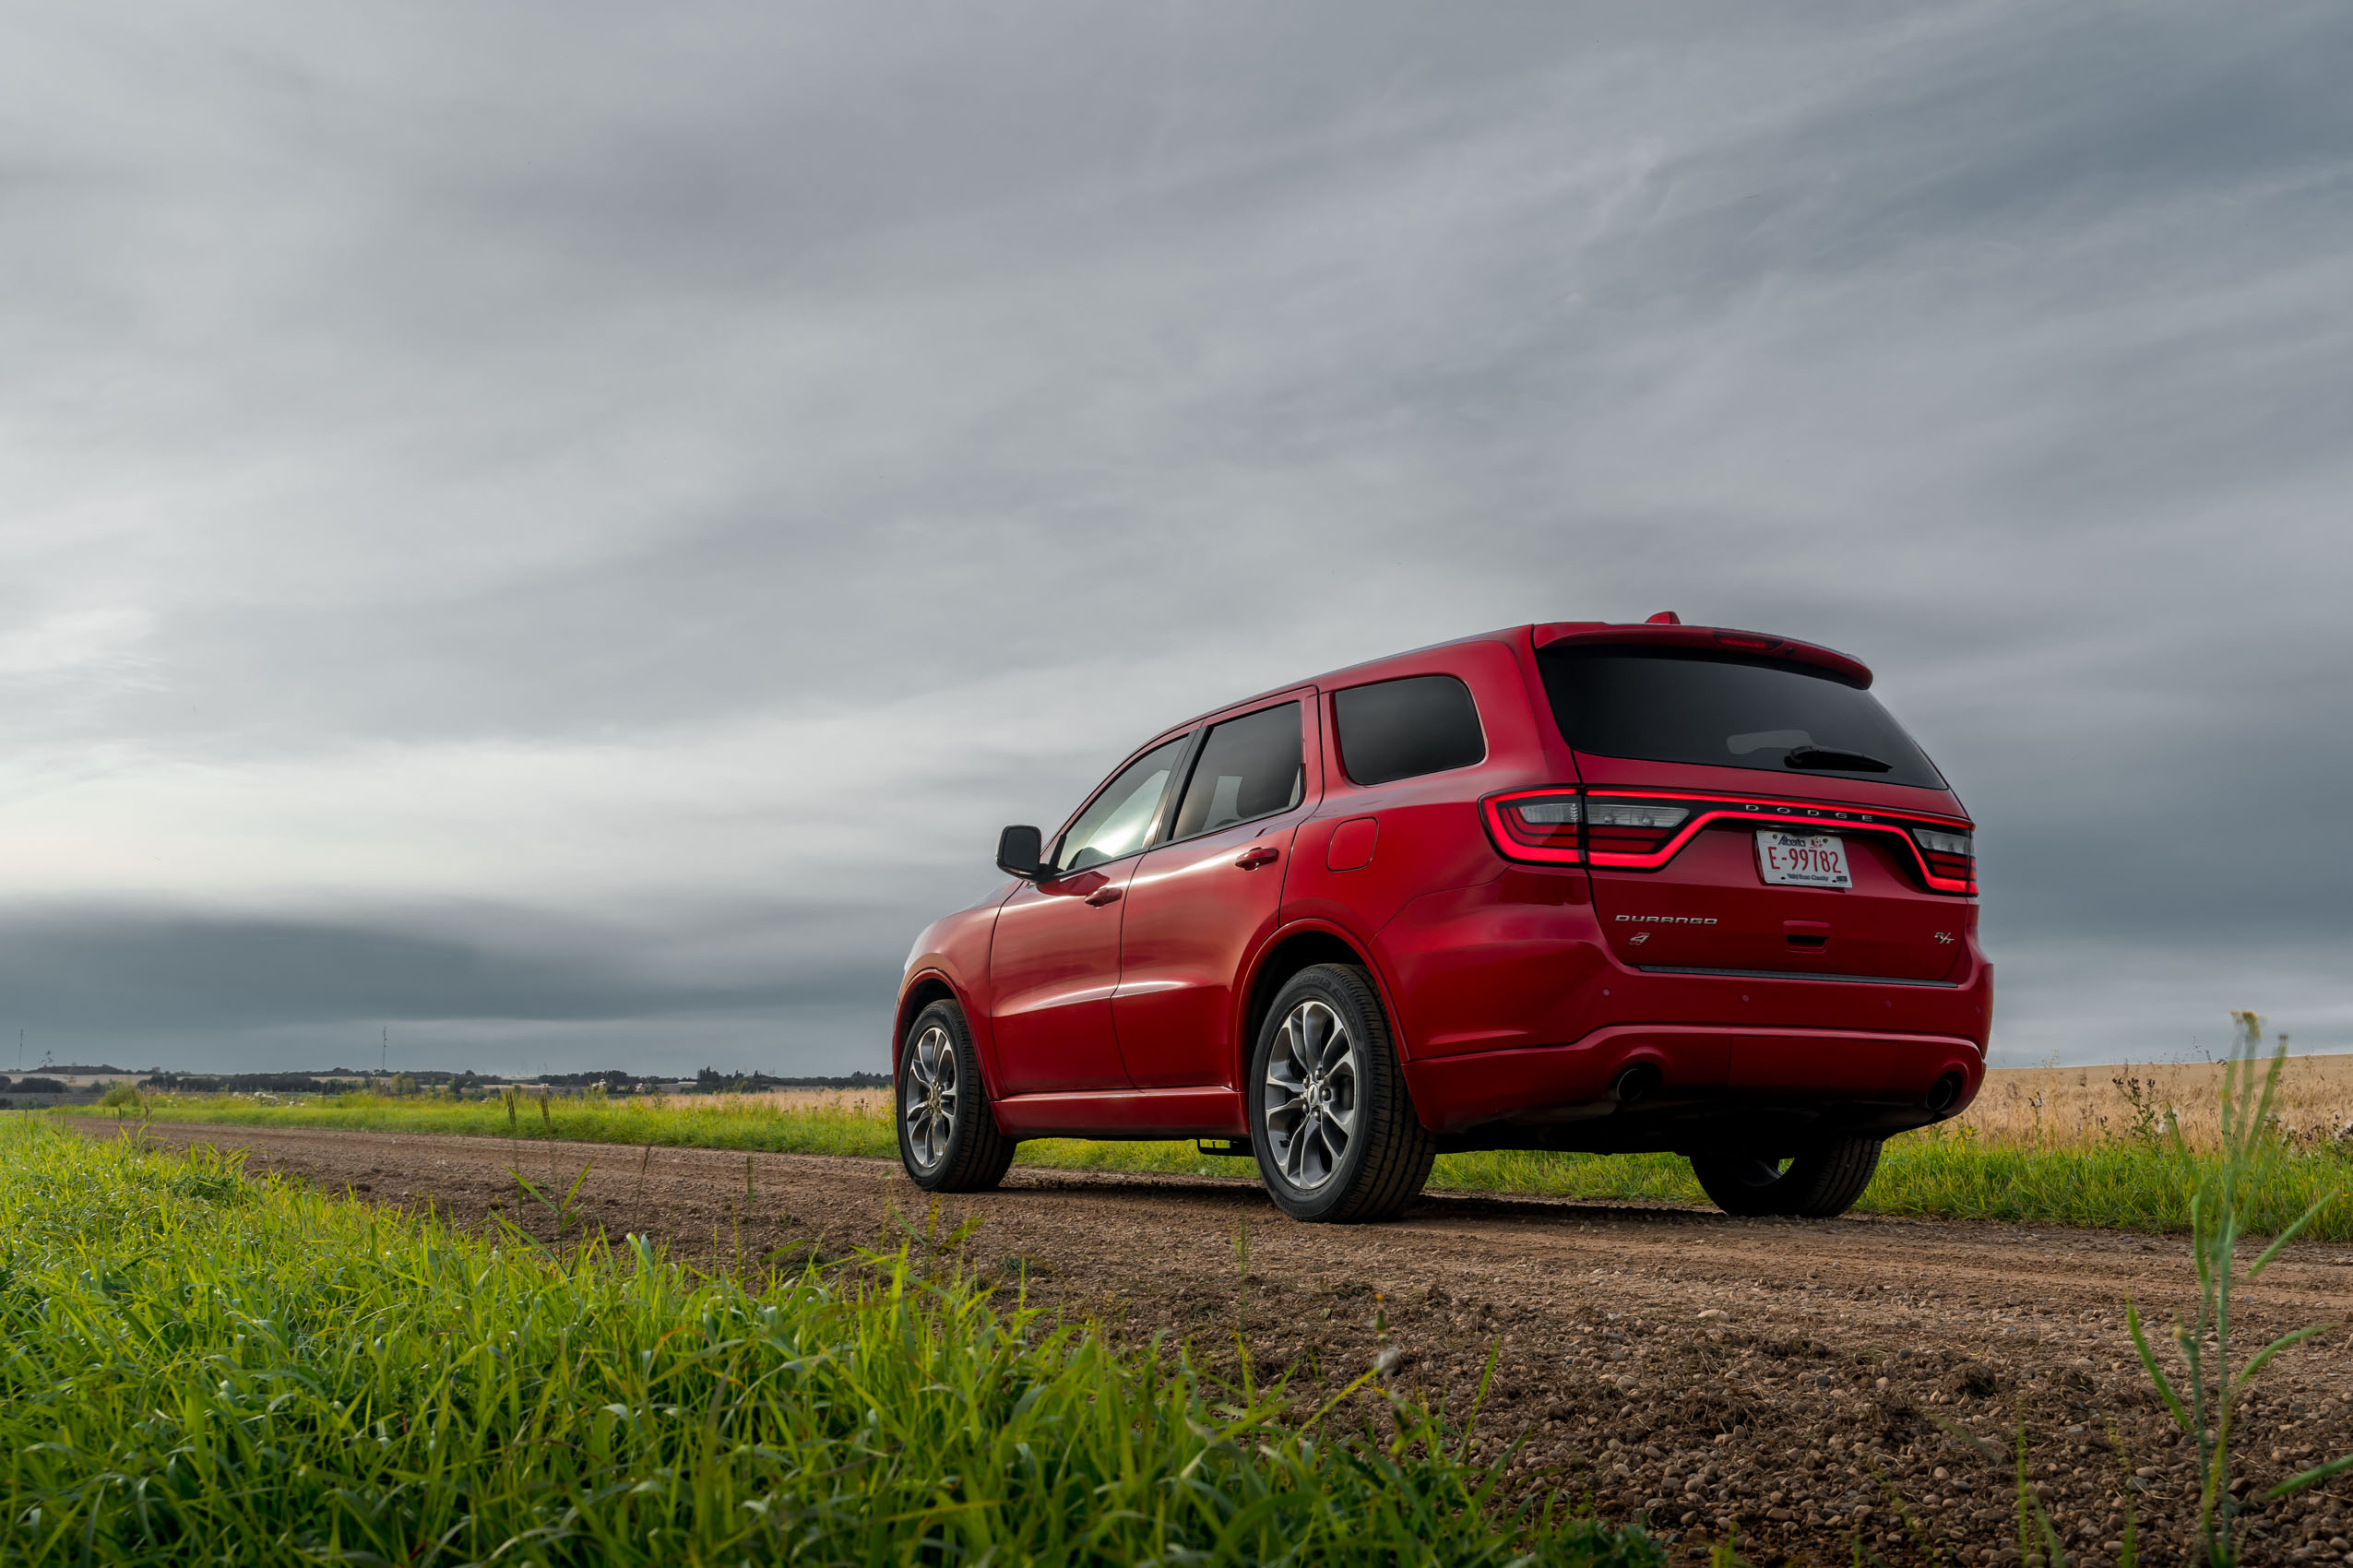 Dodge Durango RT Alberta Canada Karl Lee Alberta Car Photographer